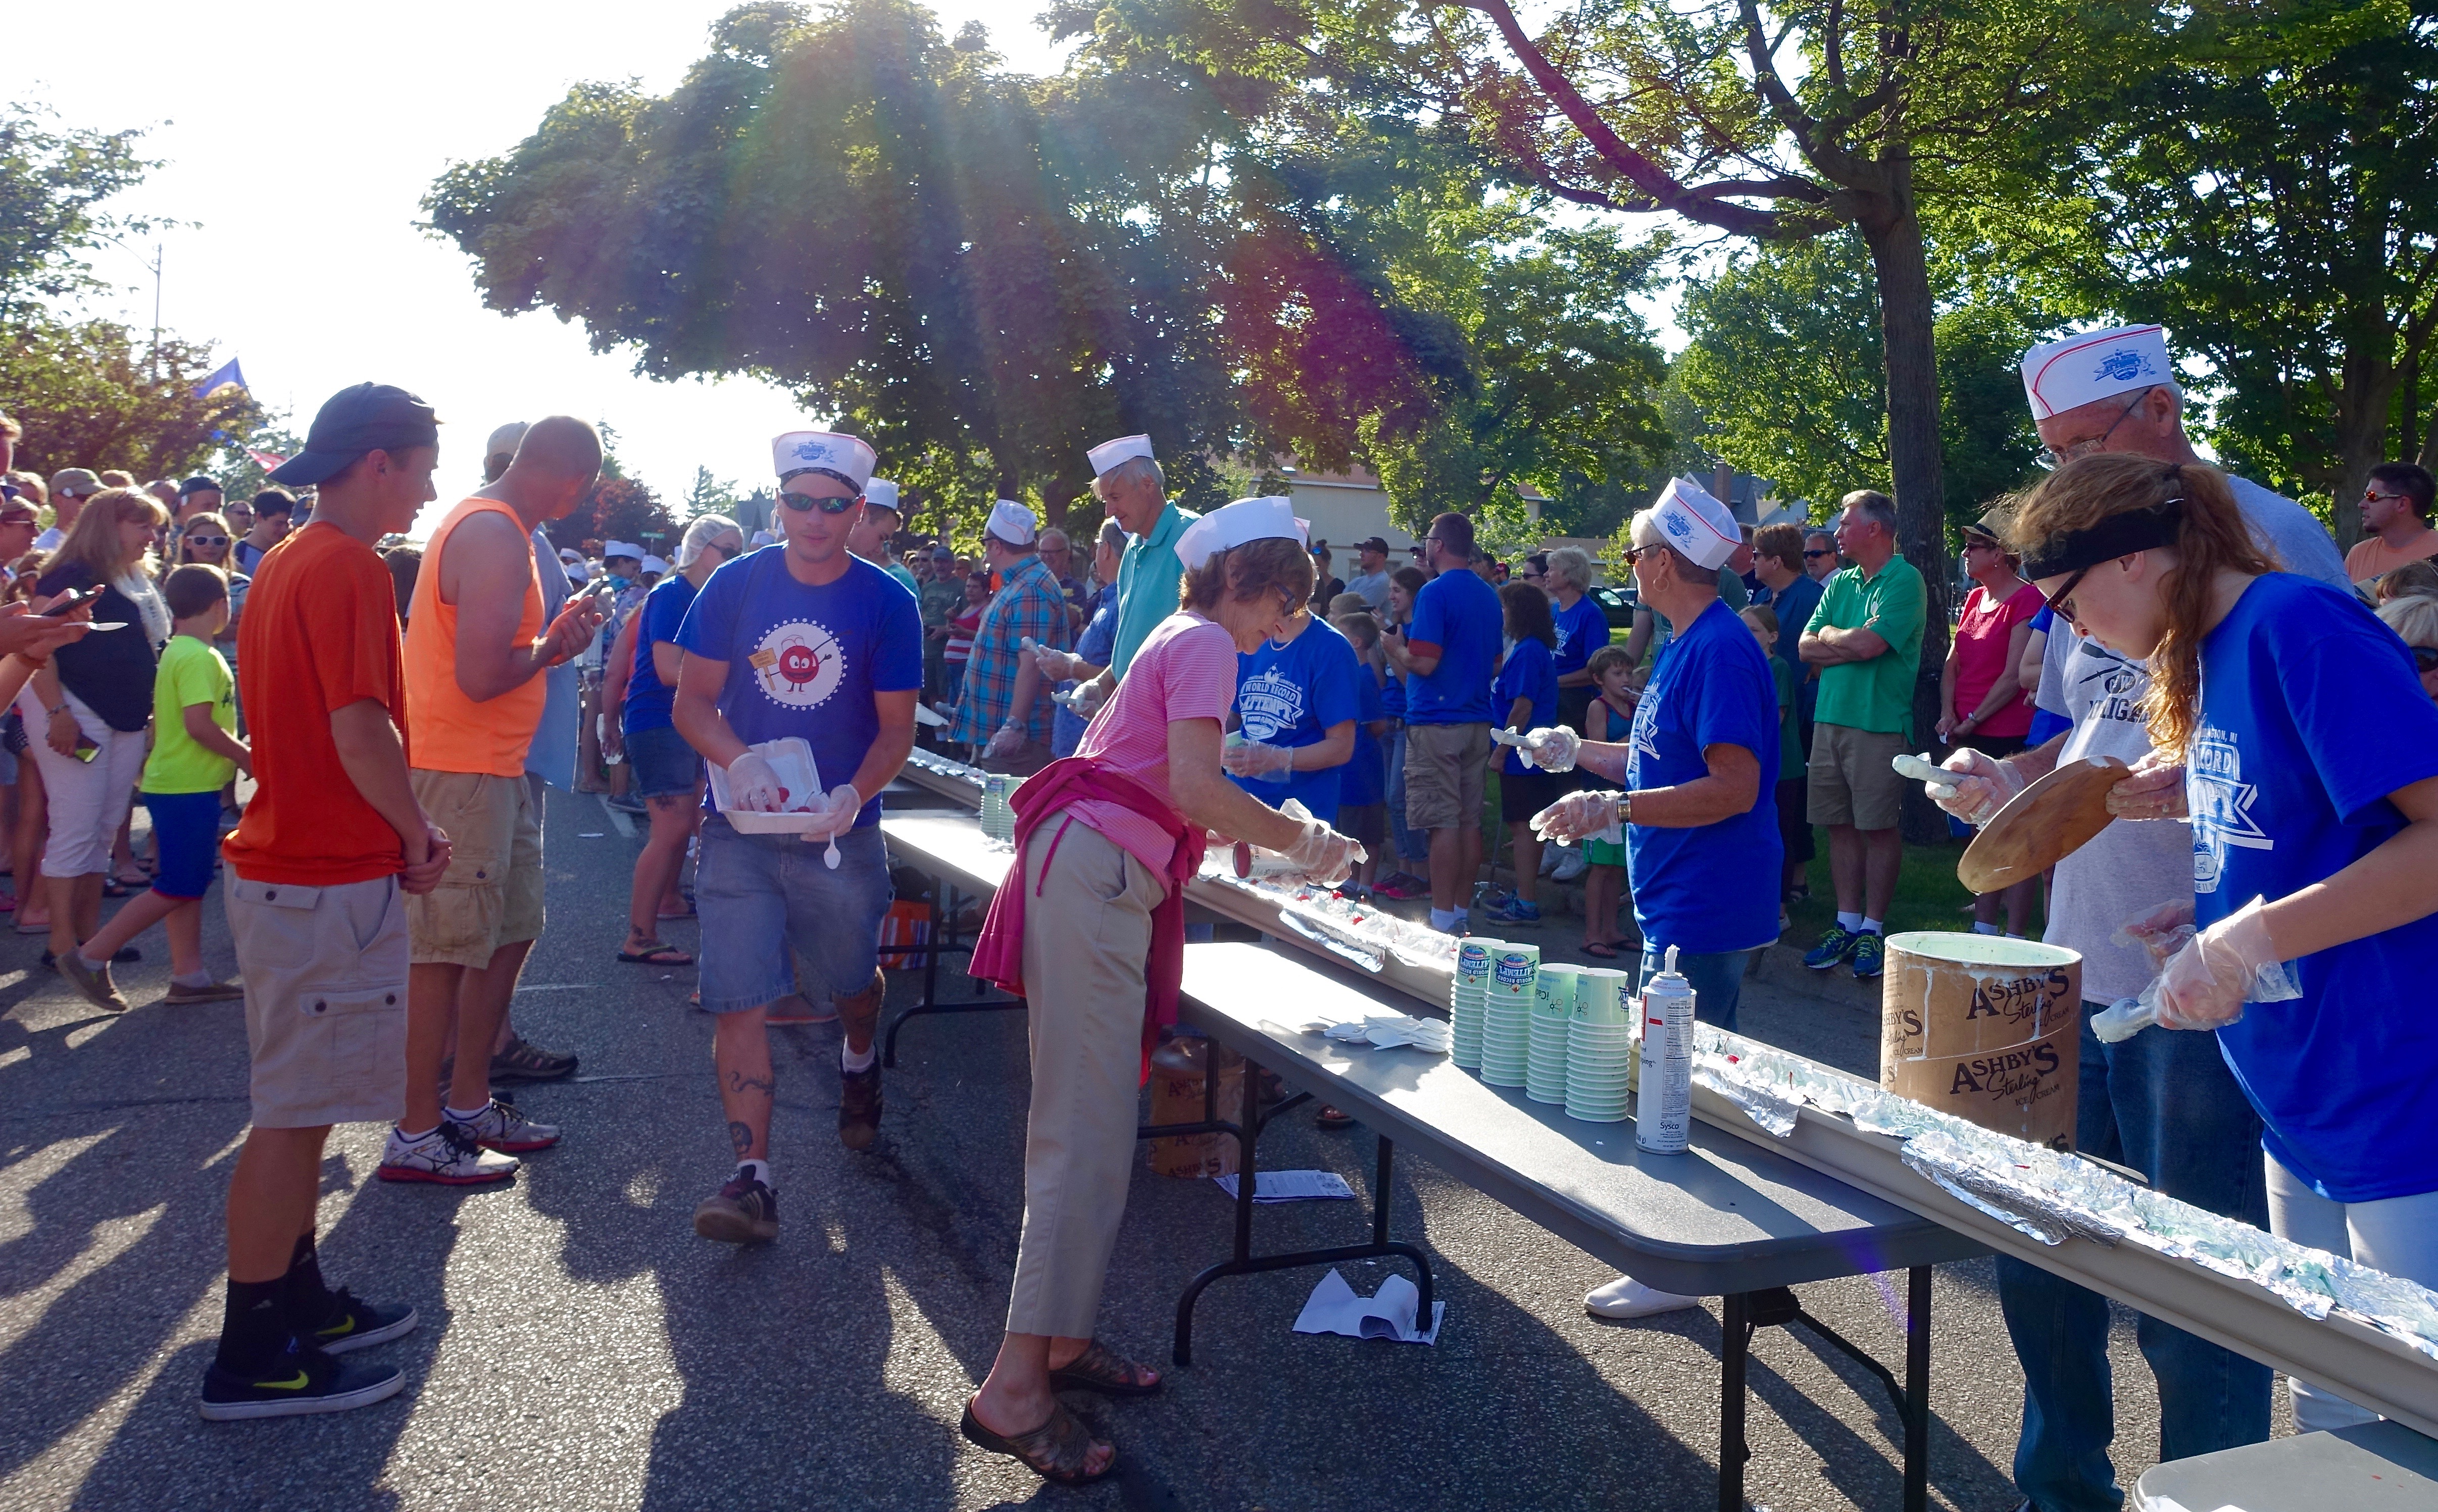 I put the cherry on top at Ludington's World's Largest Sundae Attempt